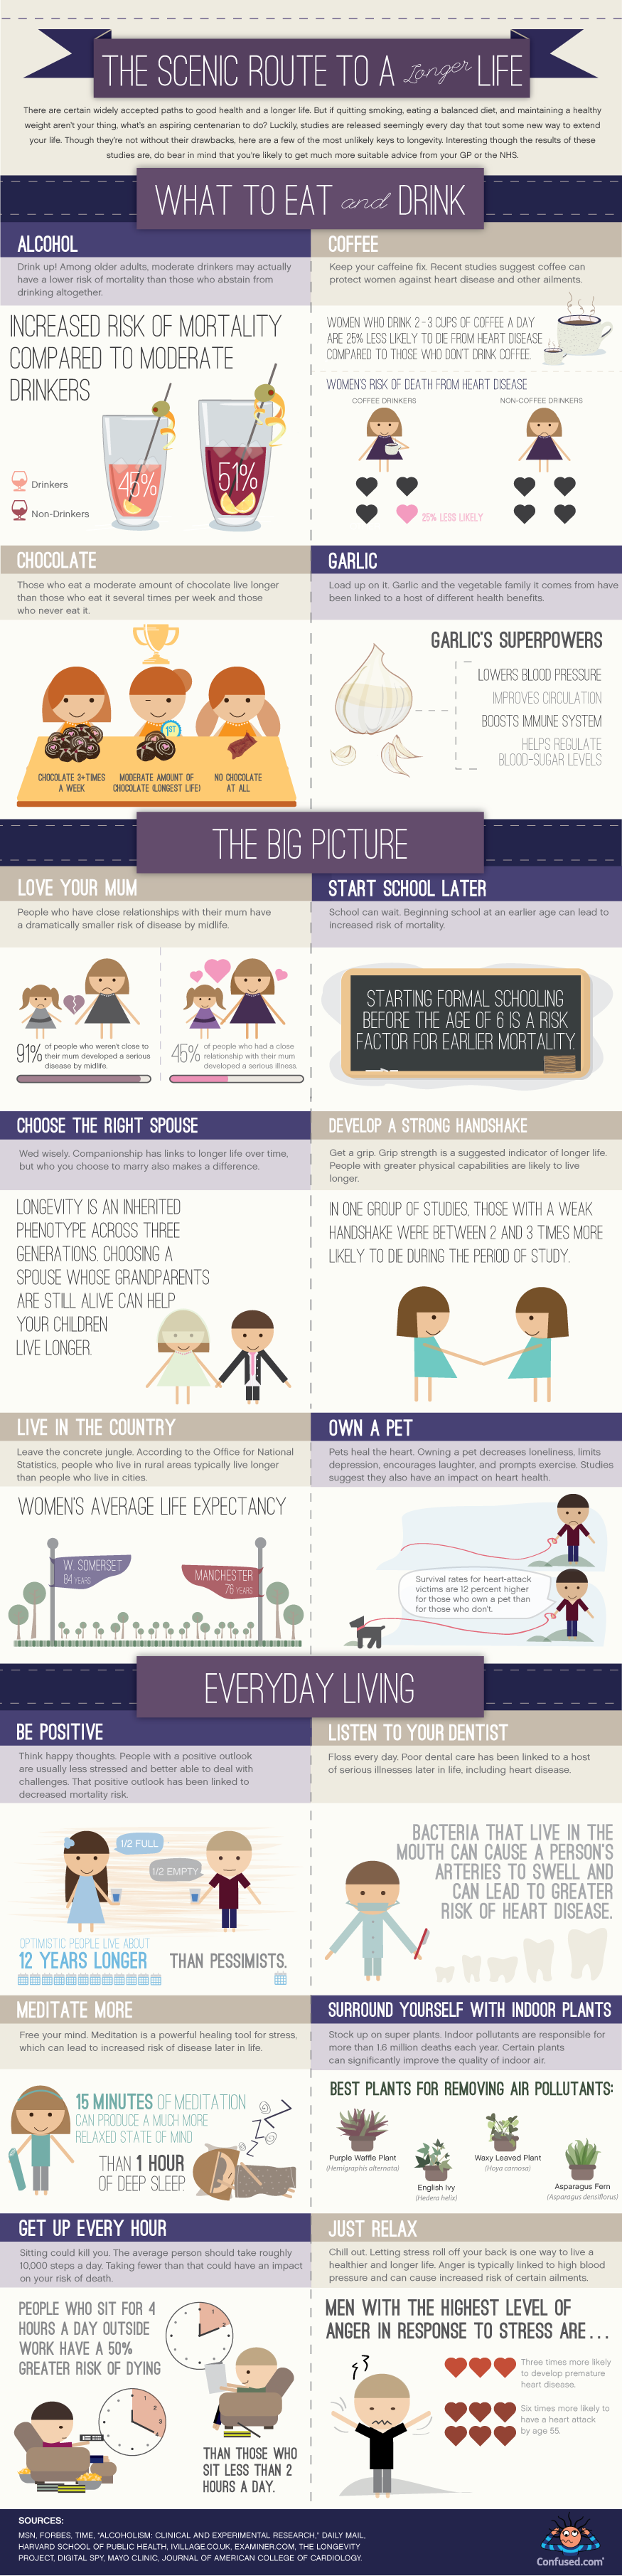 longevity tips for office workers